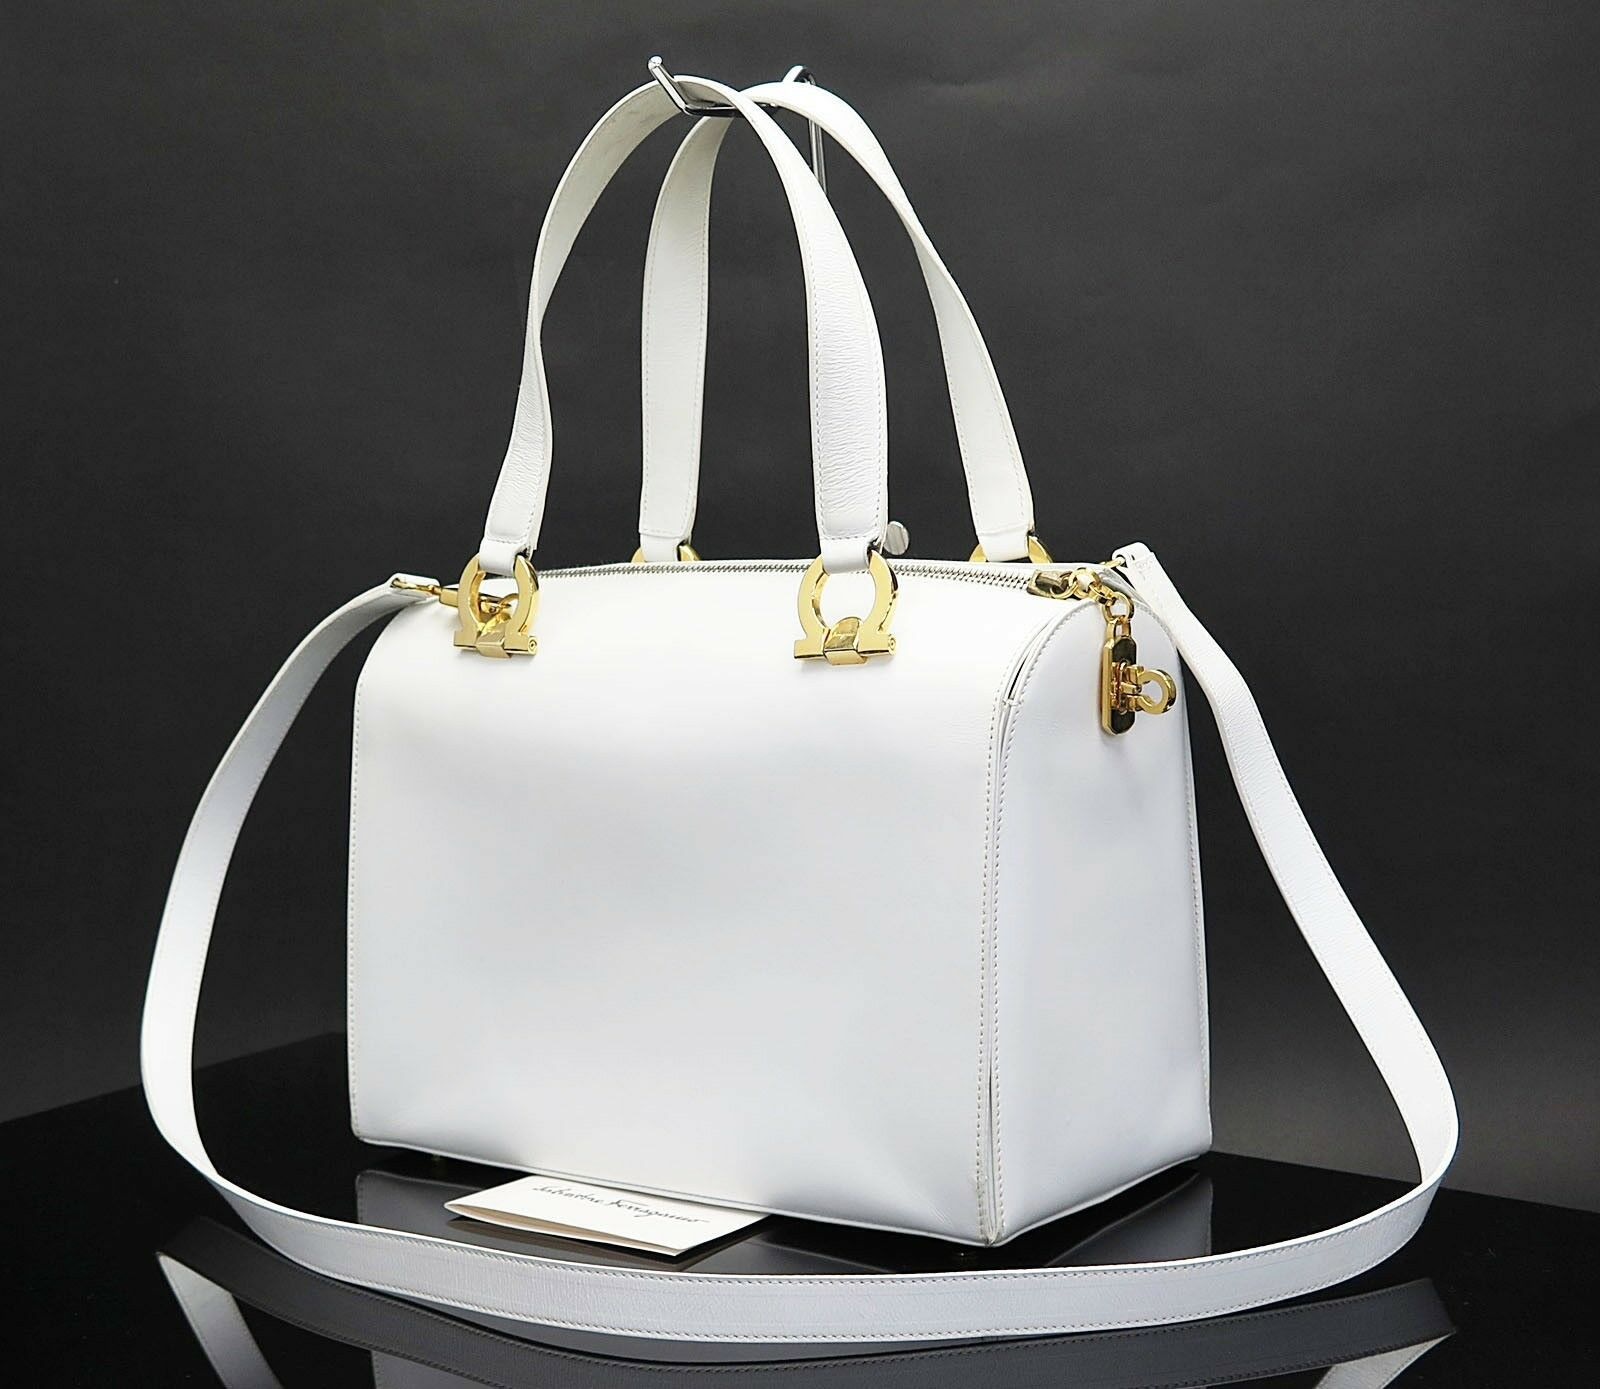 Auth SALVATORE FERRAGAMO Gancini White Leather 2-Way Shoulder Hand Bag #27583